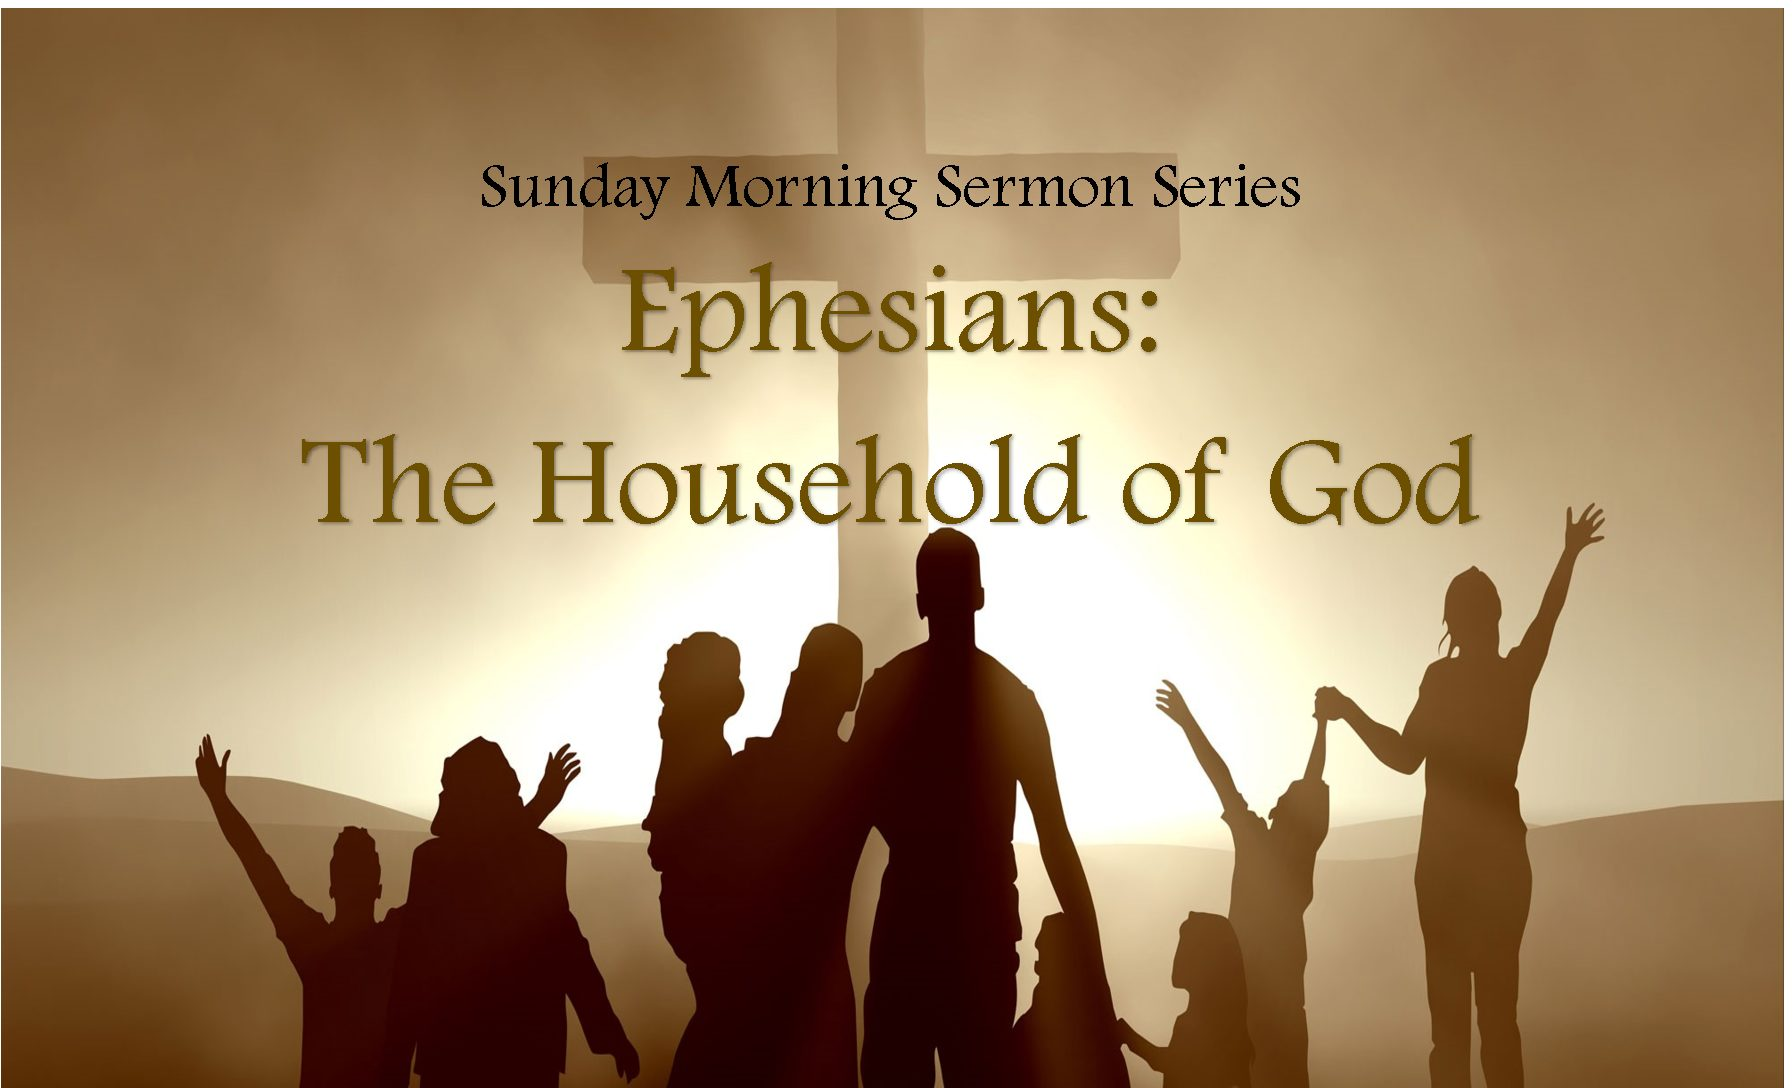 The Household of God: The Spirit's Glorious Guarantee